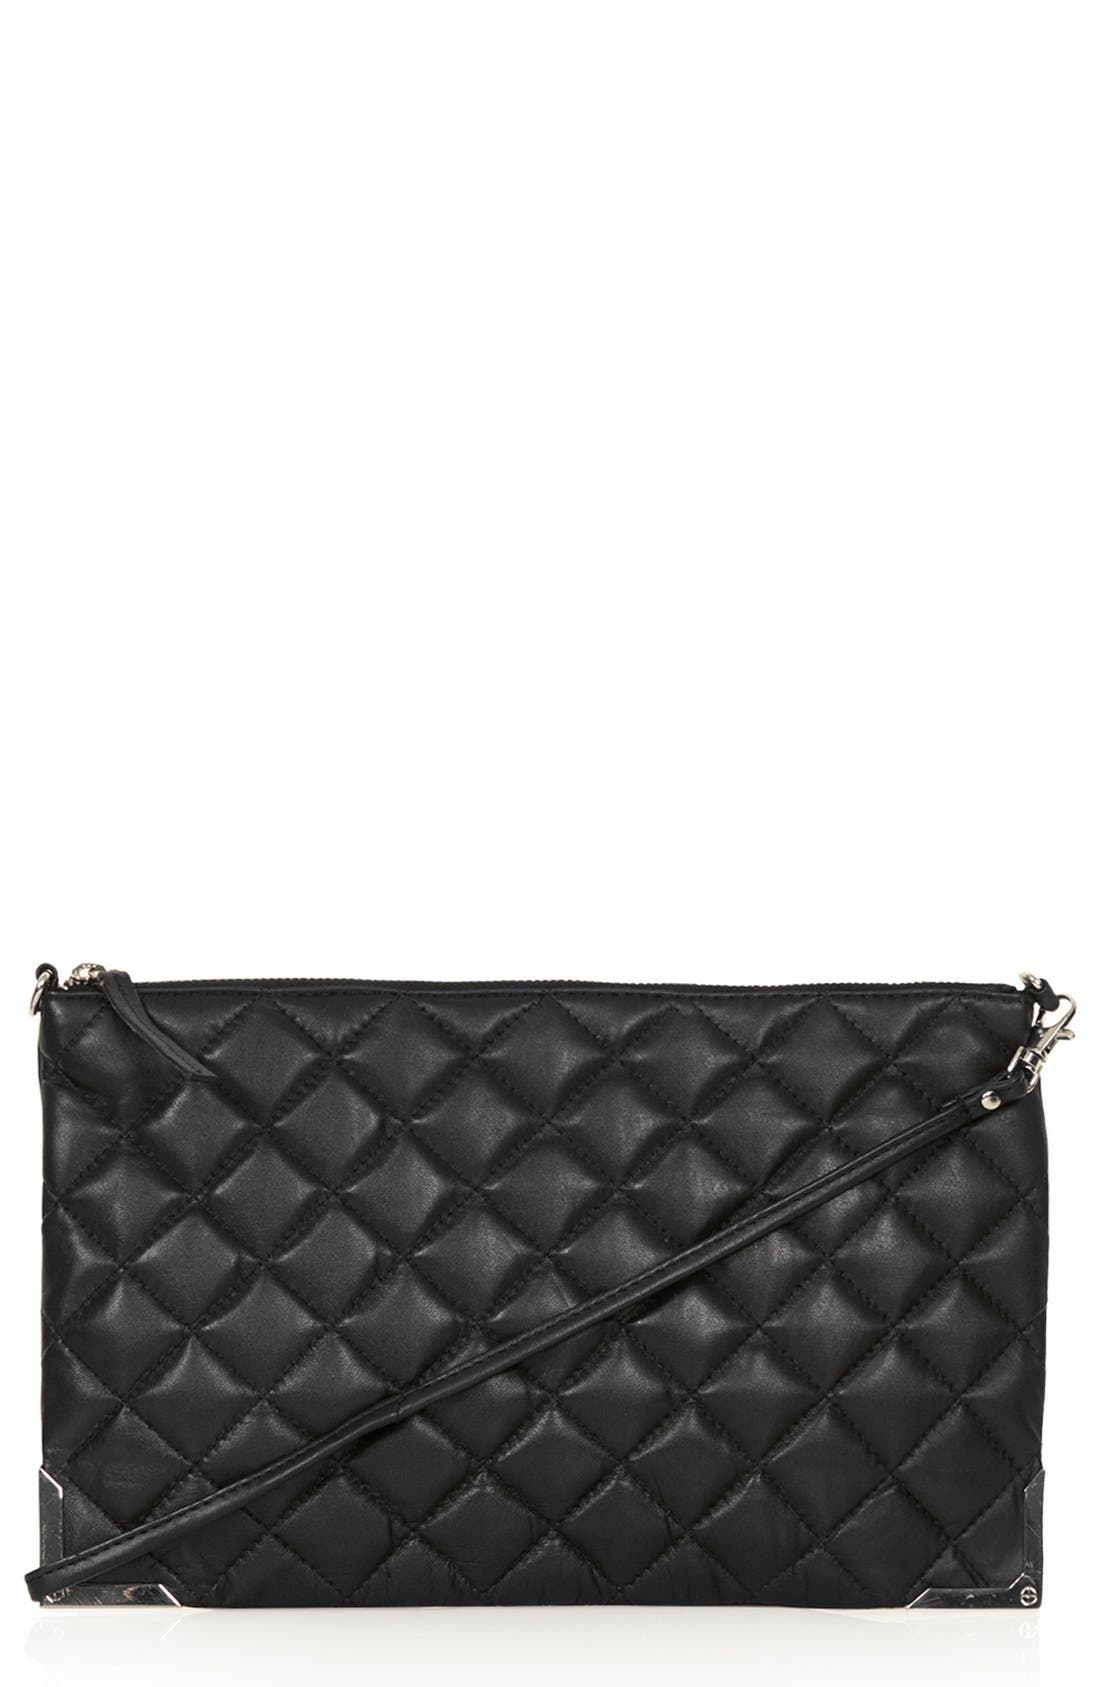 Main Image - Topshop Metal Corner Quilted Leather Clutch